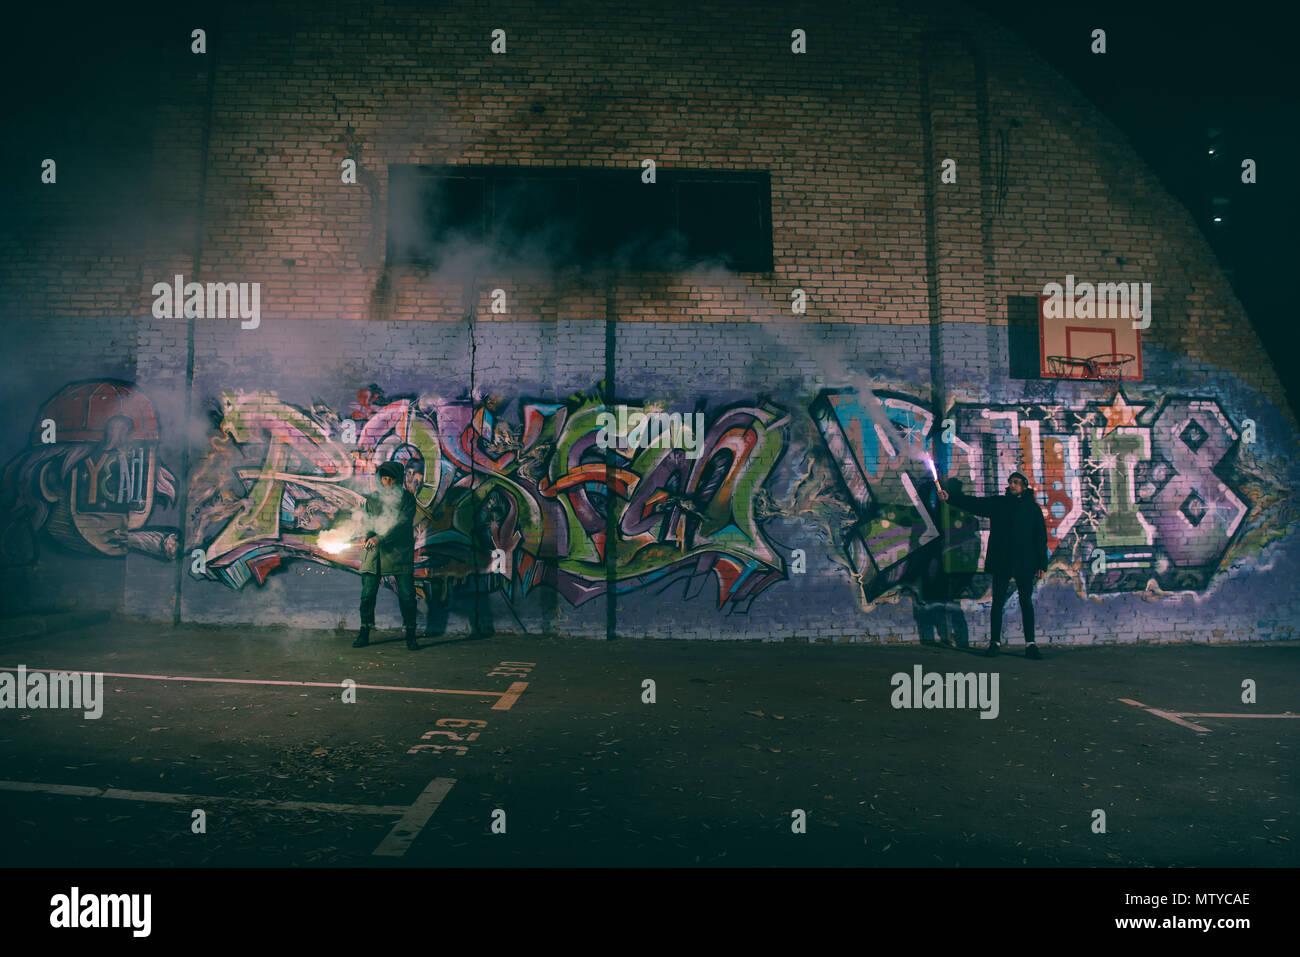 people holding smoke bombs and standing against wall with graffiti at night - Stock Image